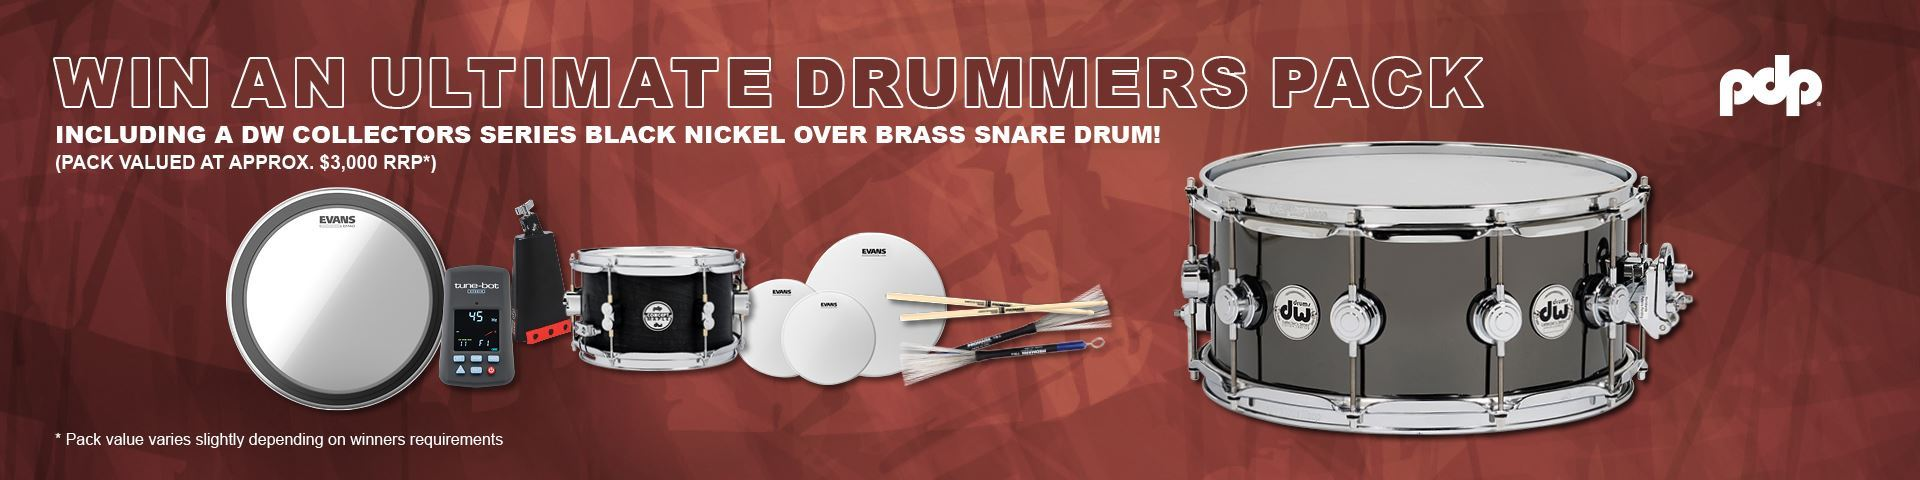 Win an Ultimate Drummers Pack Valued at $3,000 (RRP)